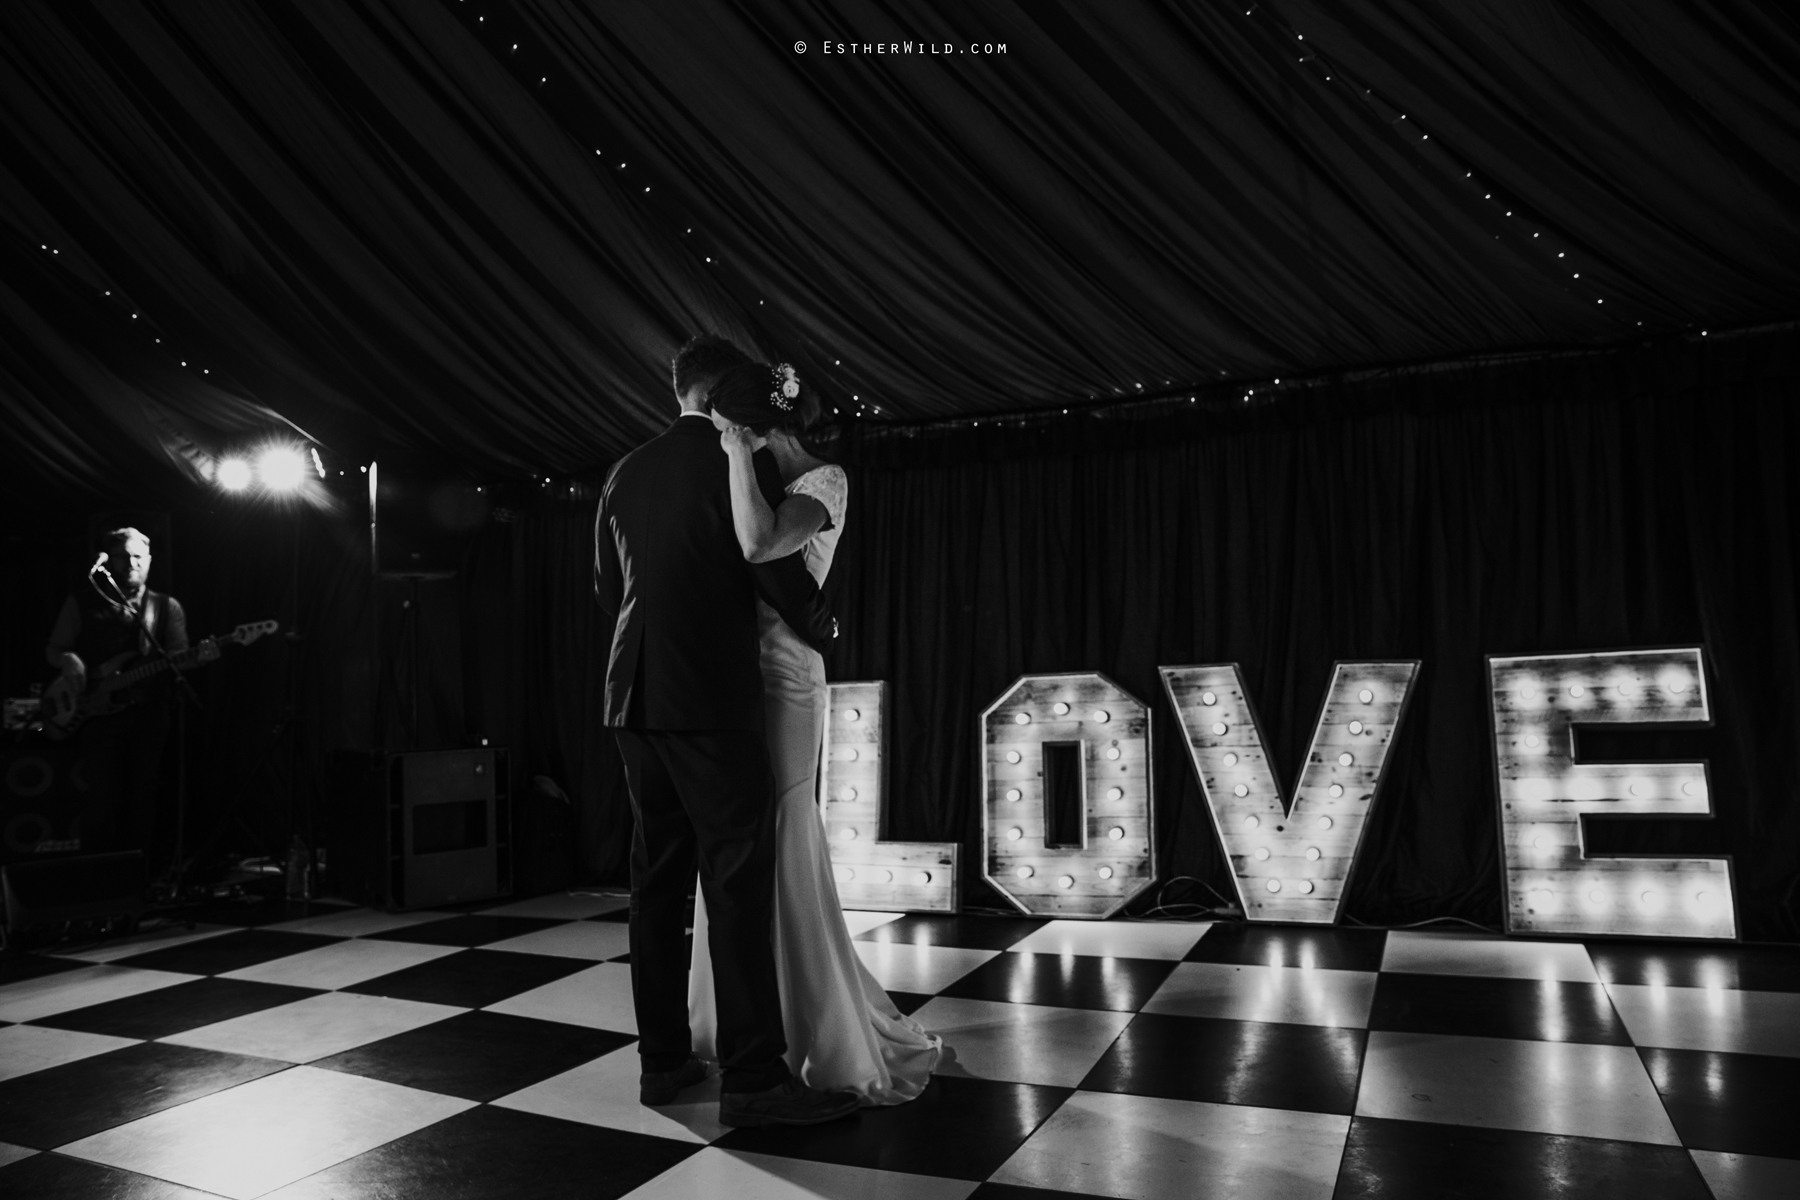 Wootton_Wedding_Copyright_Esther_Wild_Photographer_IMG_3188-2.jpg